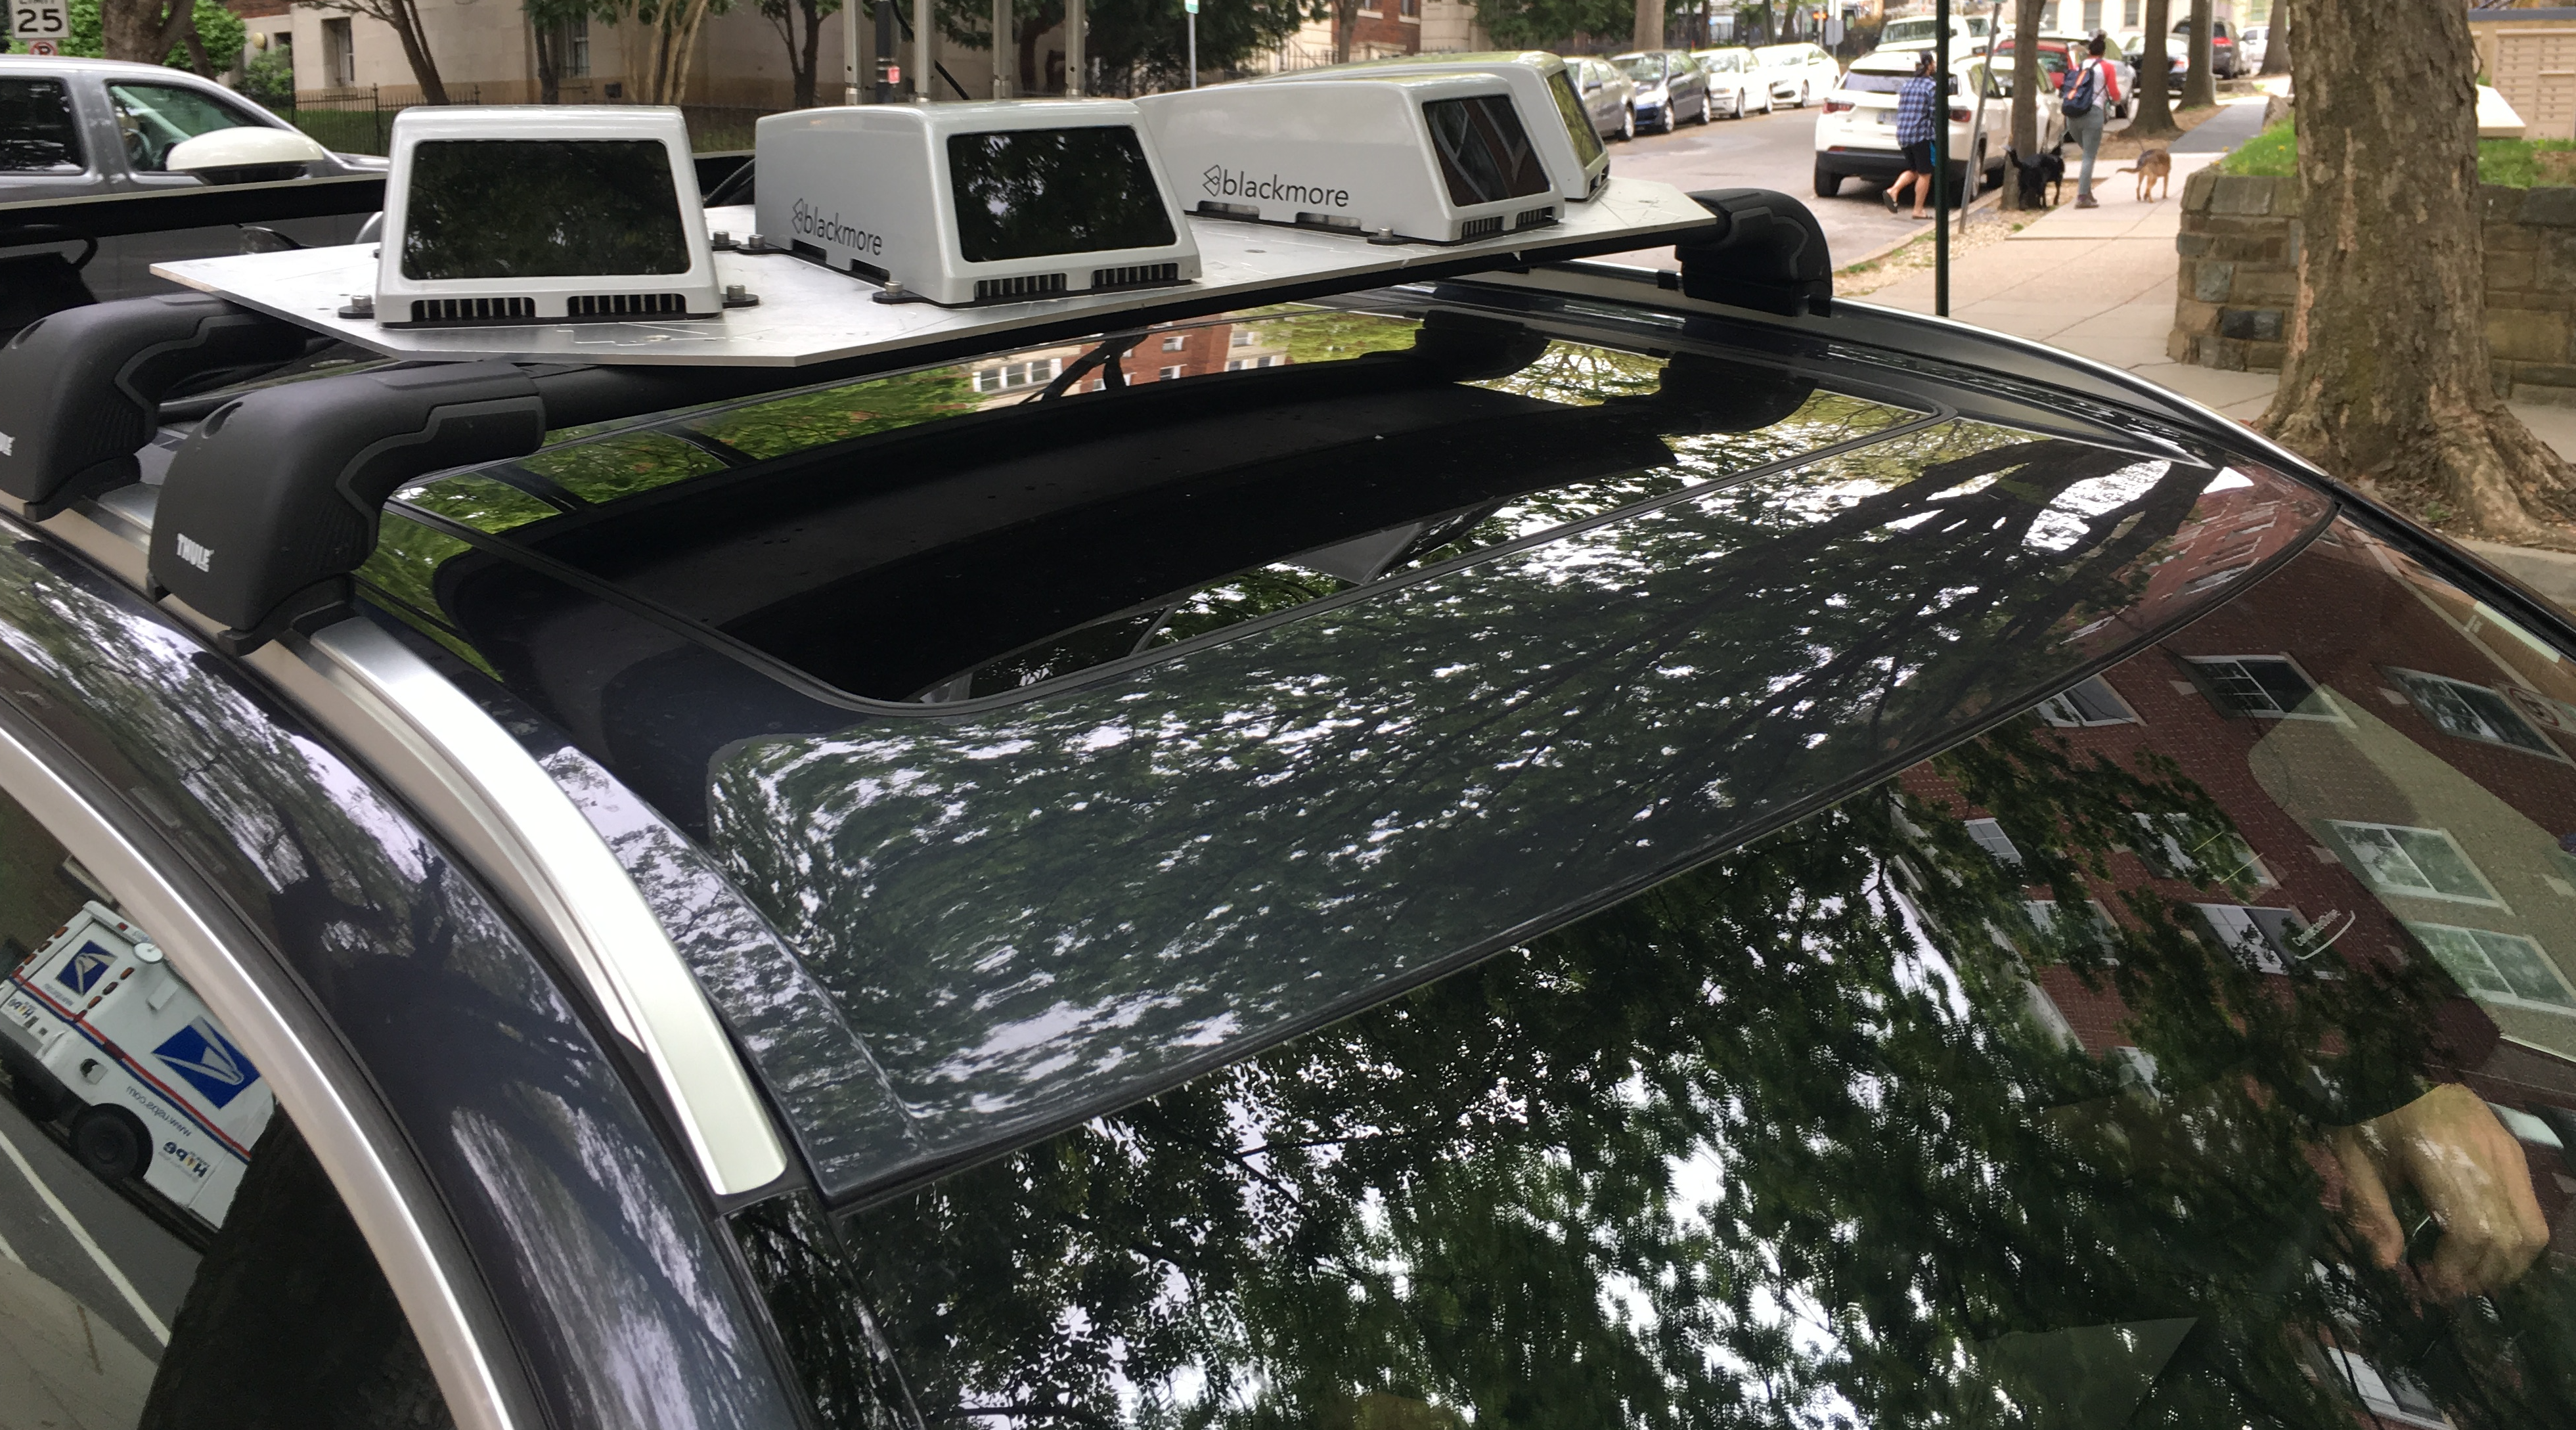 Two self-driving startups team up to build a different kind of lidar